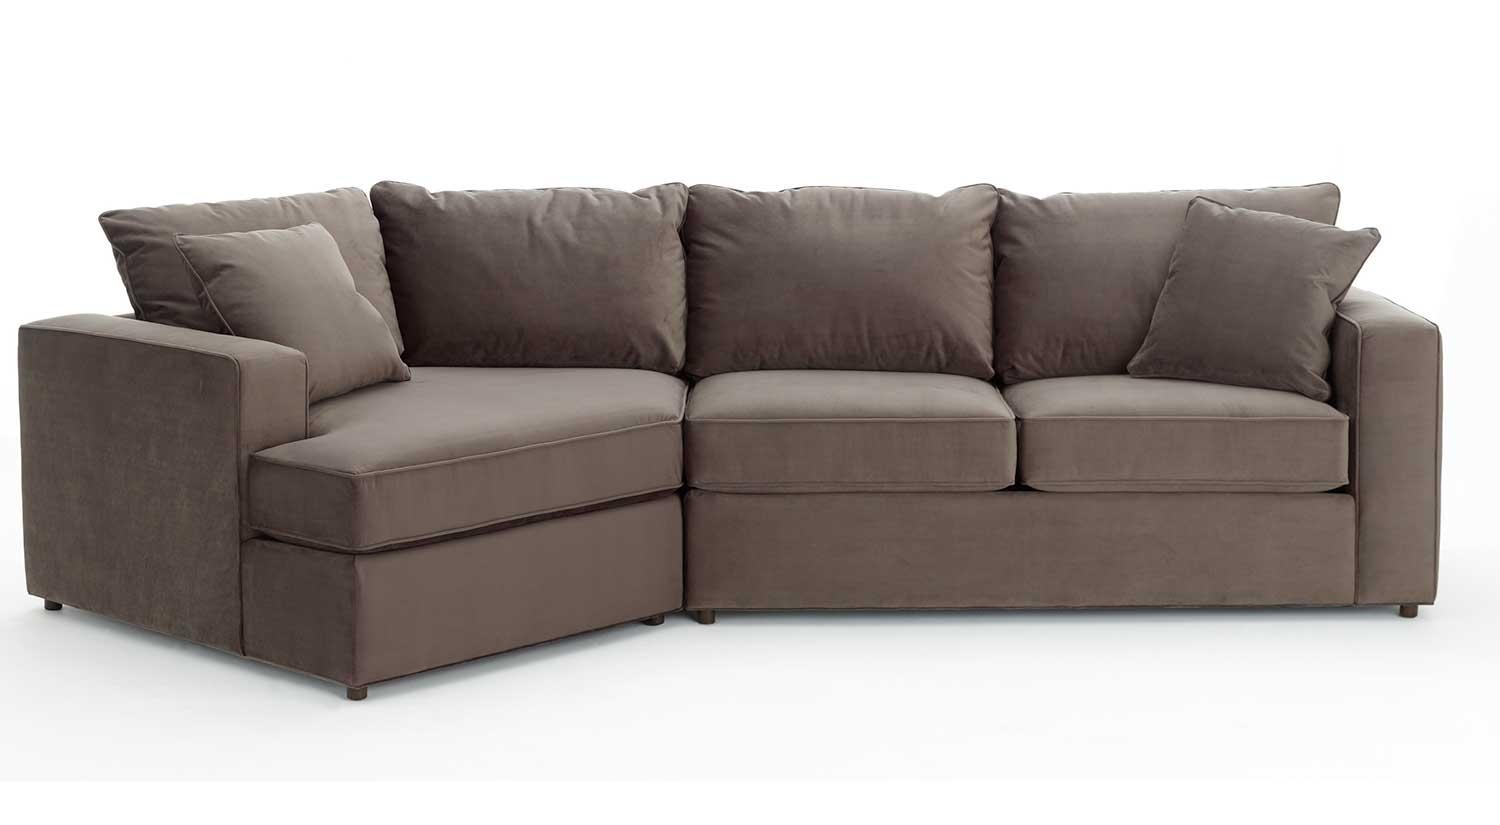 Circle Furniture – Circle Furniture | Living Room | Milford Cuddle With Circle Sectional (Image 1 of 15)